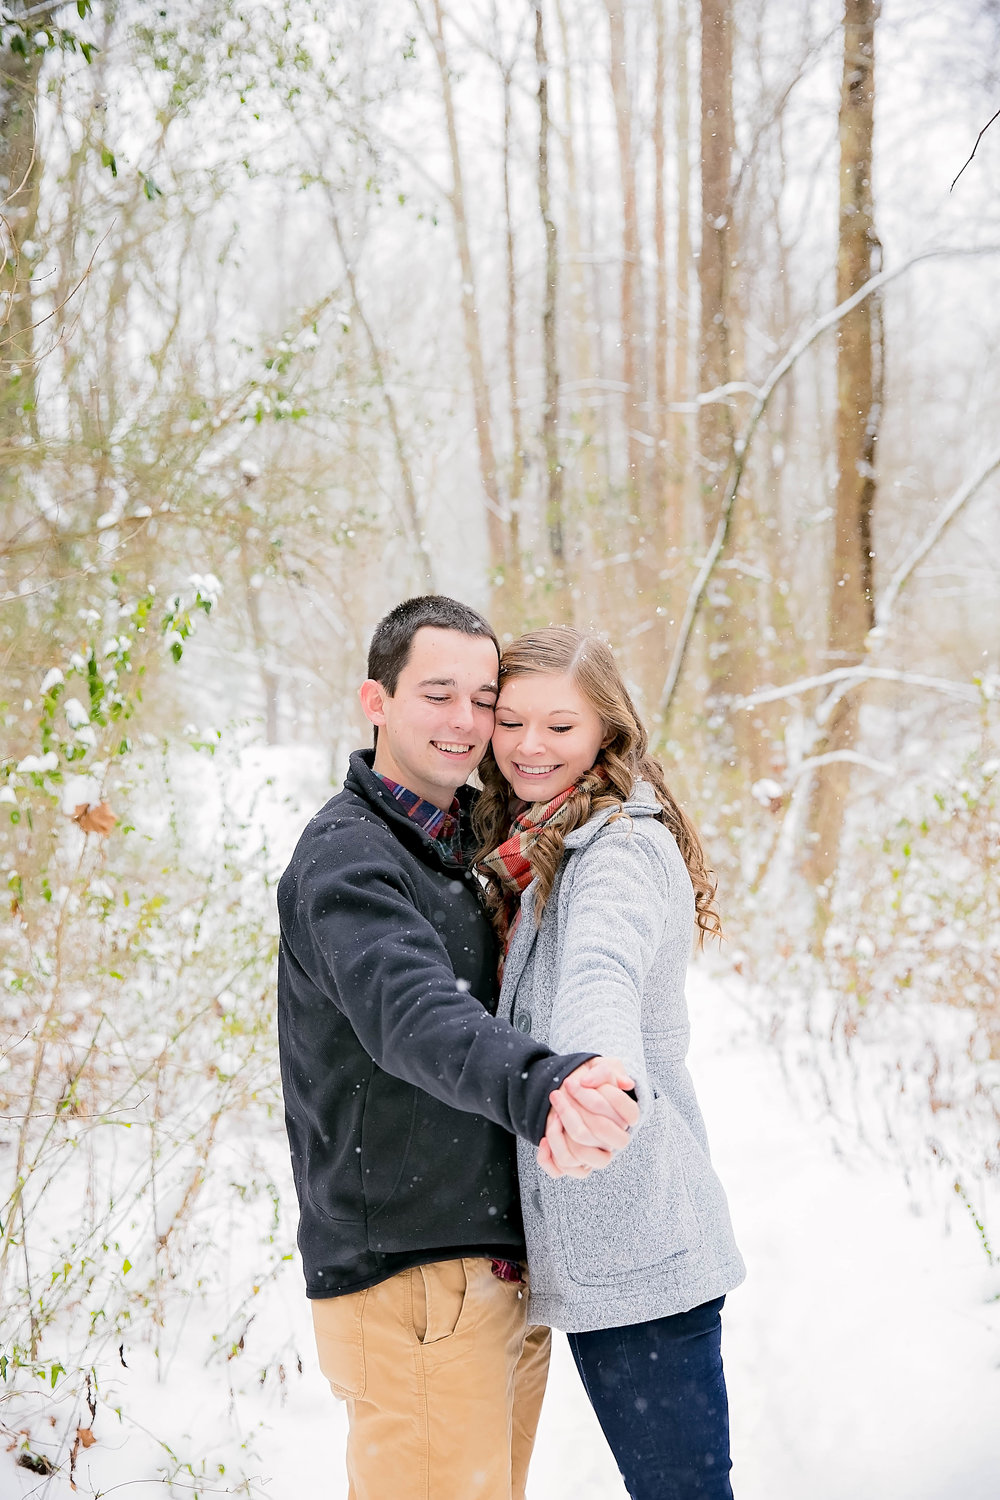 East Tennessee winter engagement photos